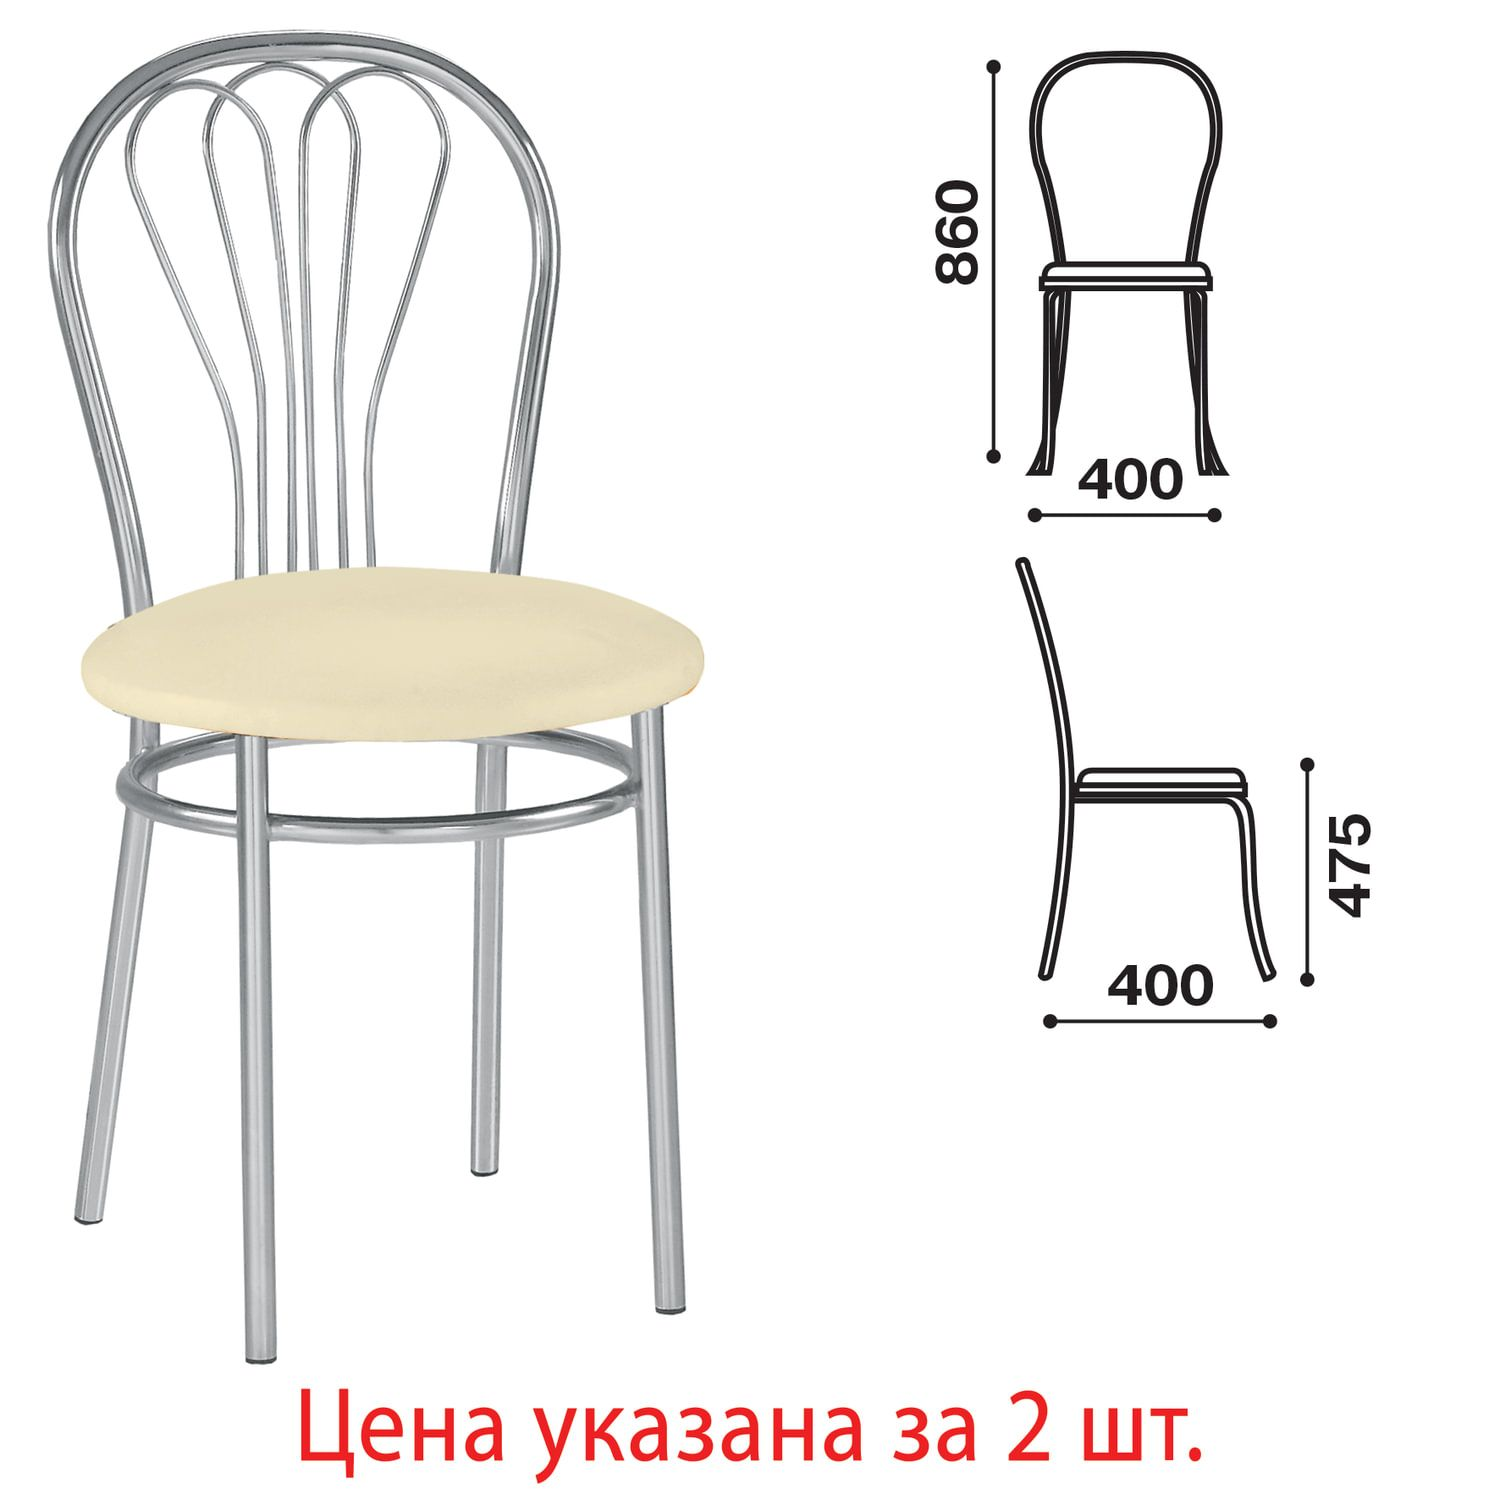 Chairs for dining rooms, cafes, venus houses, SET 2 pieces, chrome frame, beige leather